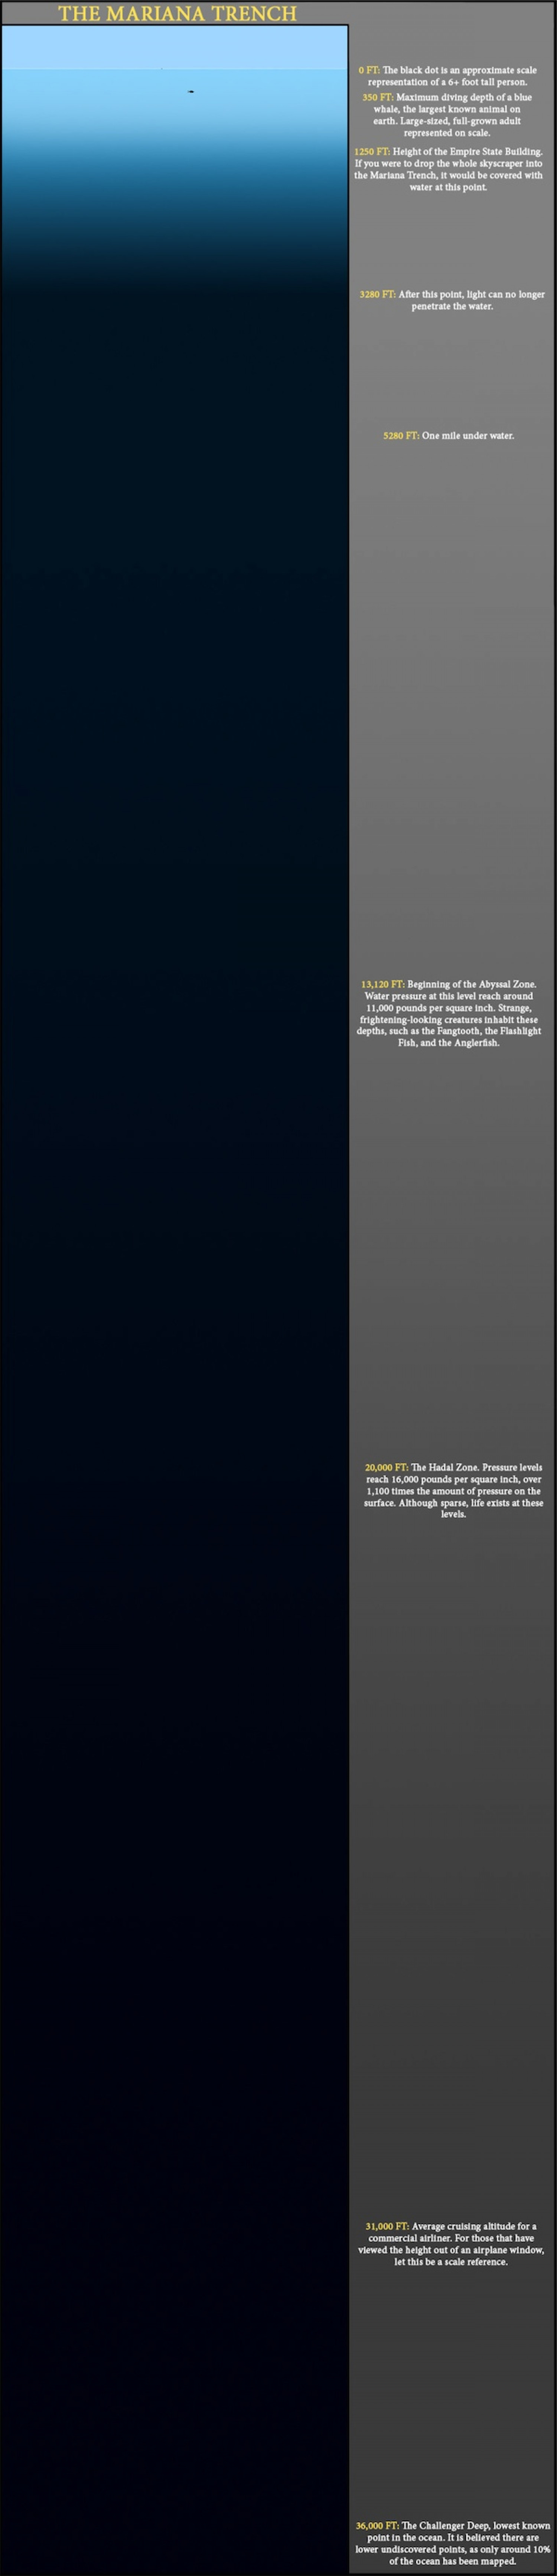 The Mariana Trench Infographic